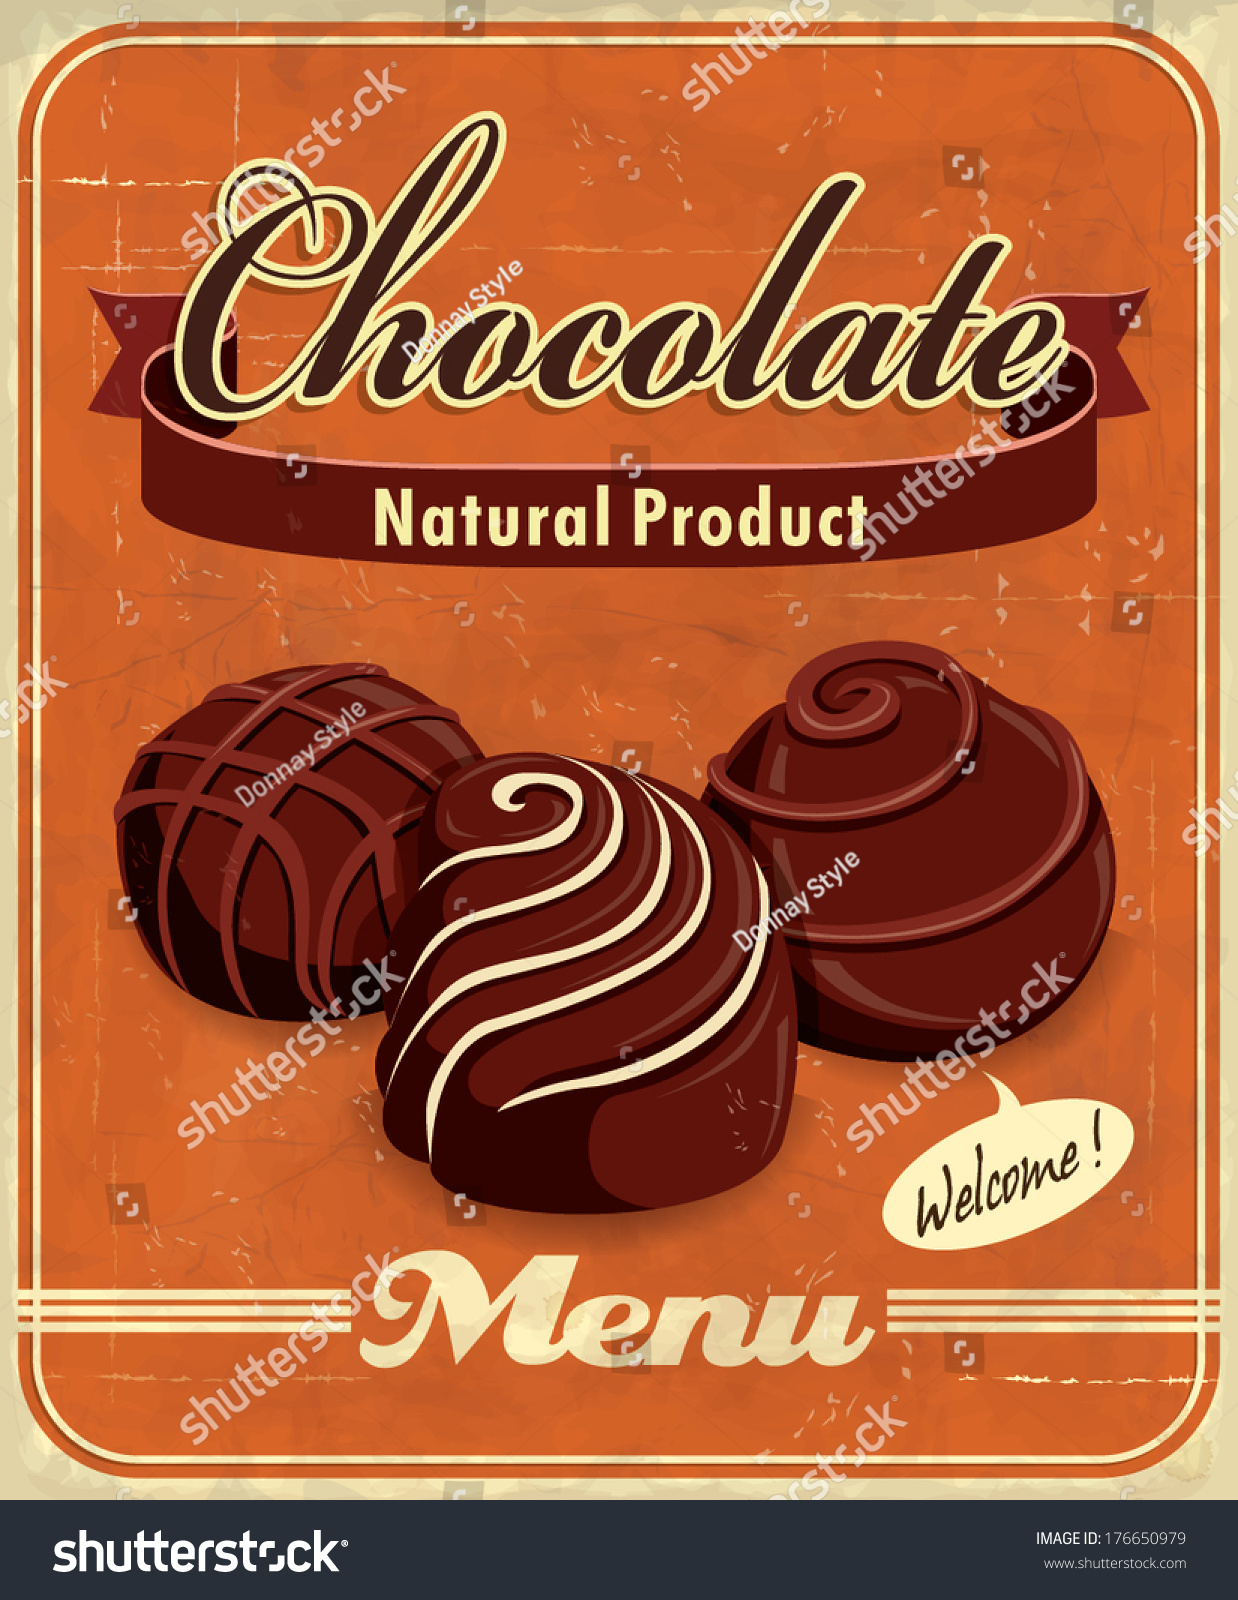 Vintage Chocolate Poster Design Stock Vector 176650979 - Shutterstock